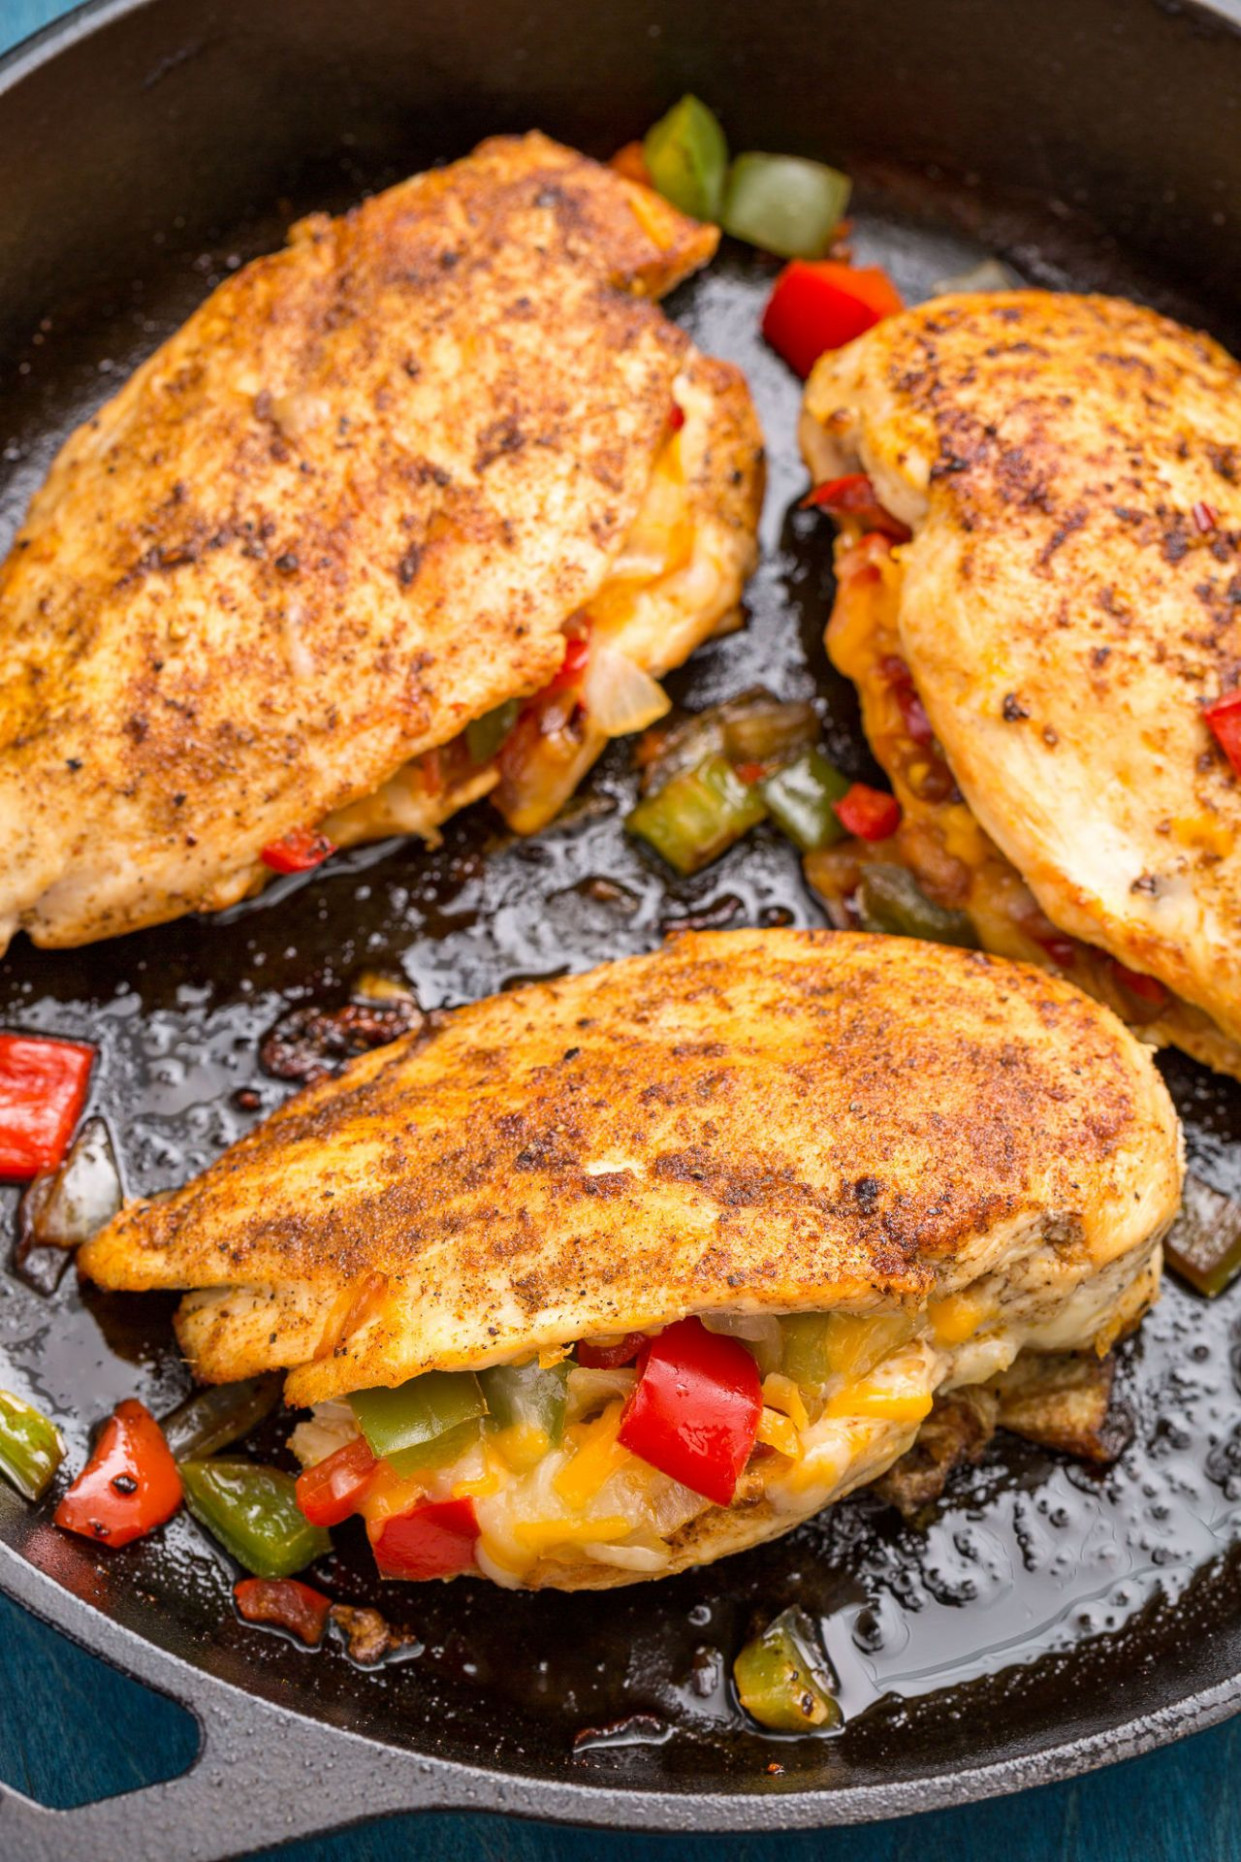 Creative Stuffed Chicken Recipes, From Lasagna to Jalapeño ...